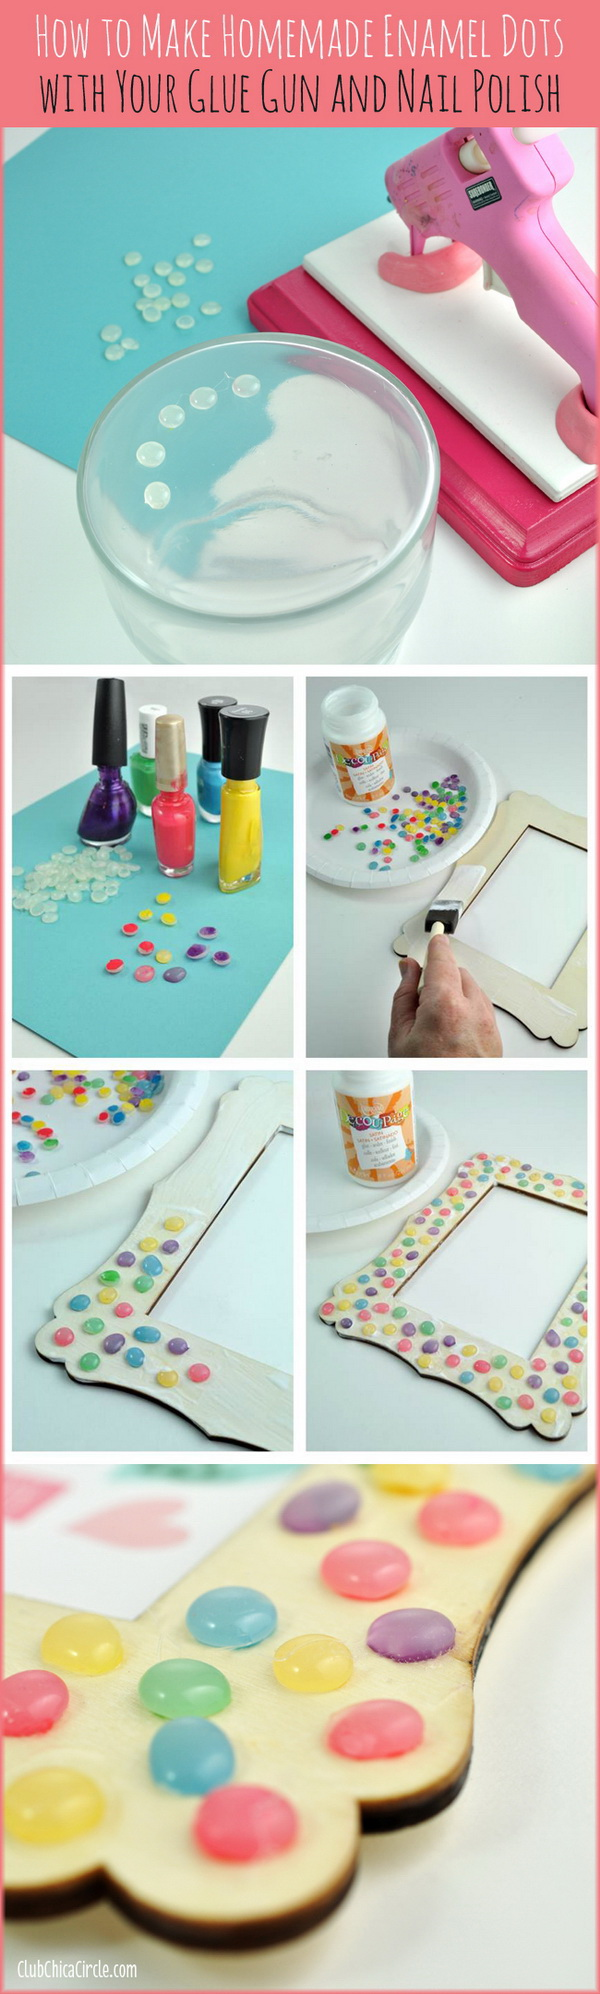 Homemade Faux Enamel Dots